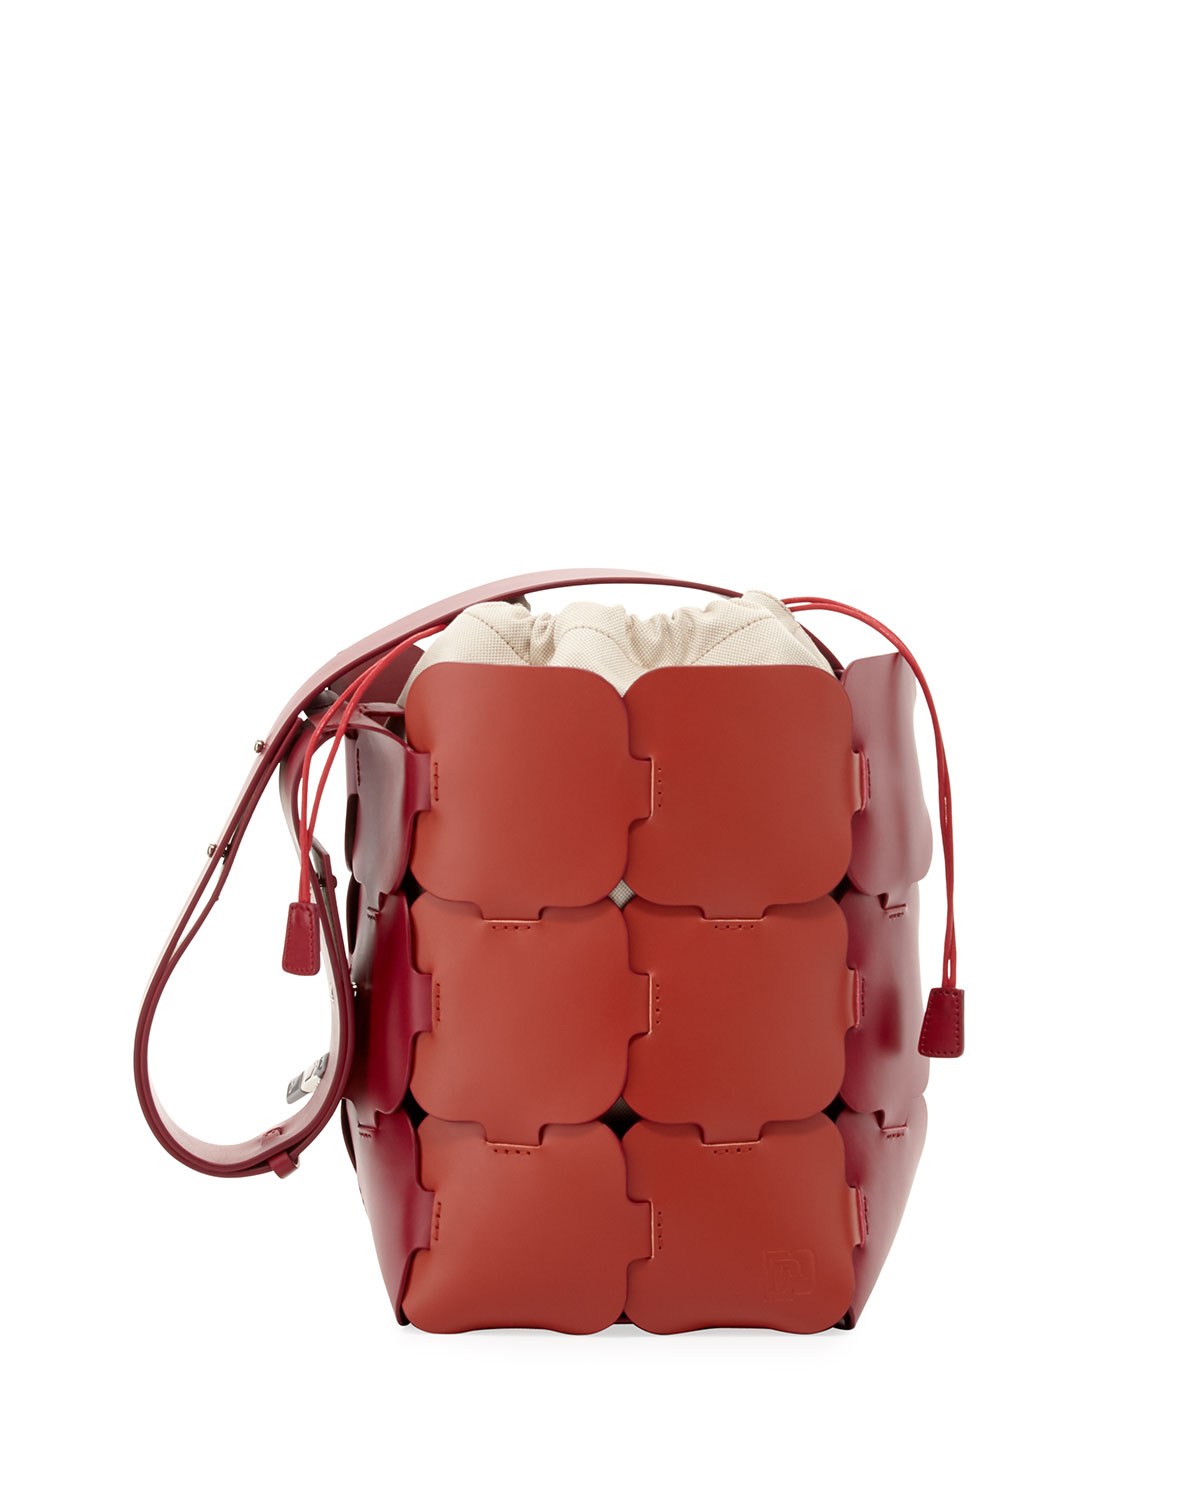 Large Leather Hobo Mini Bag, Pink/Red